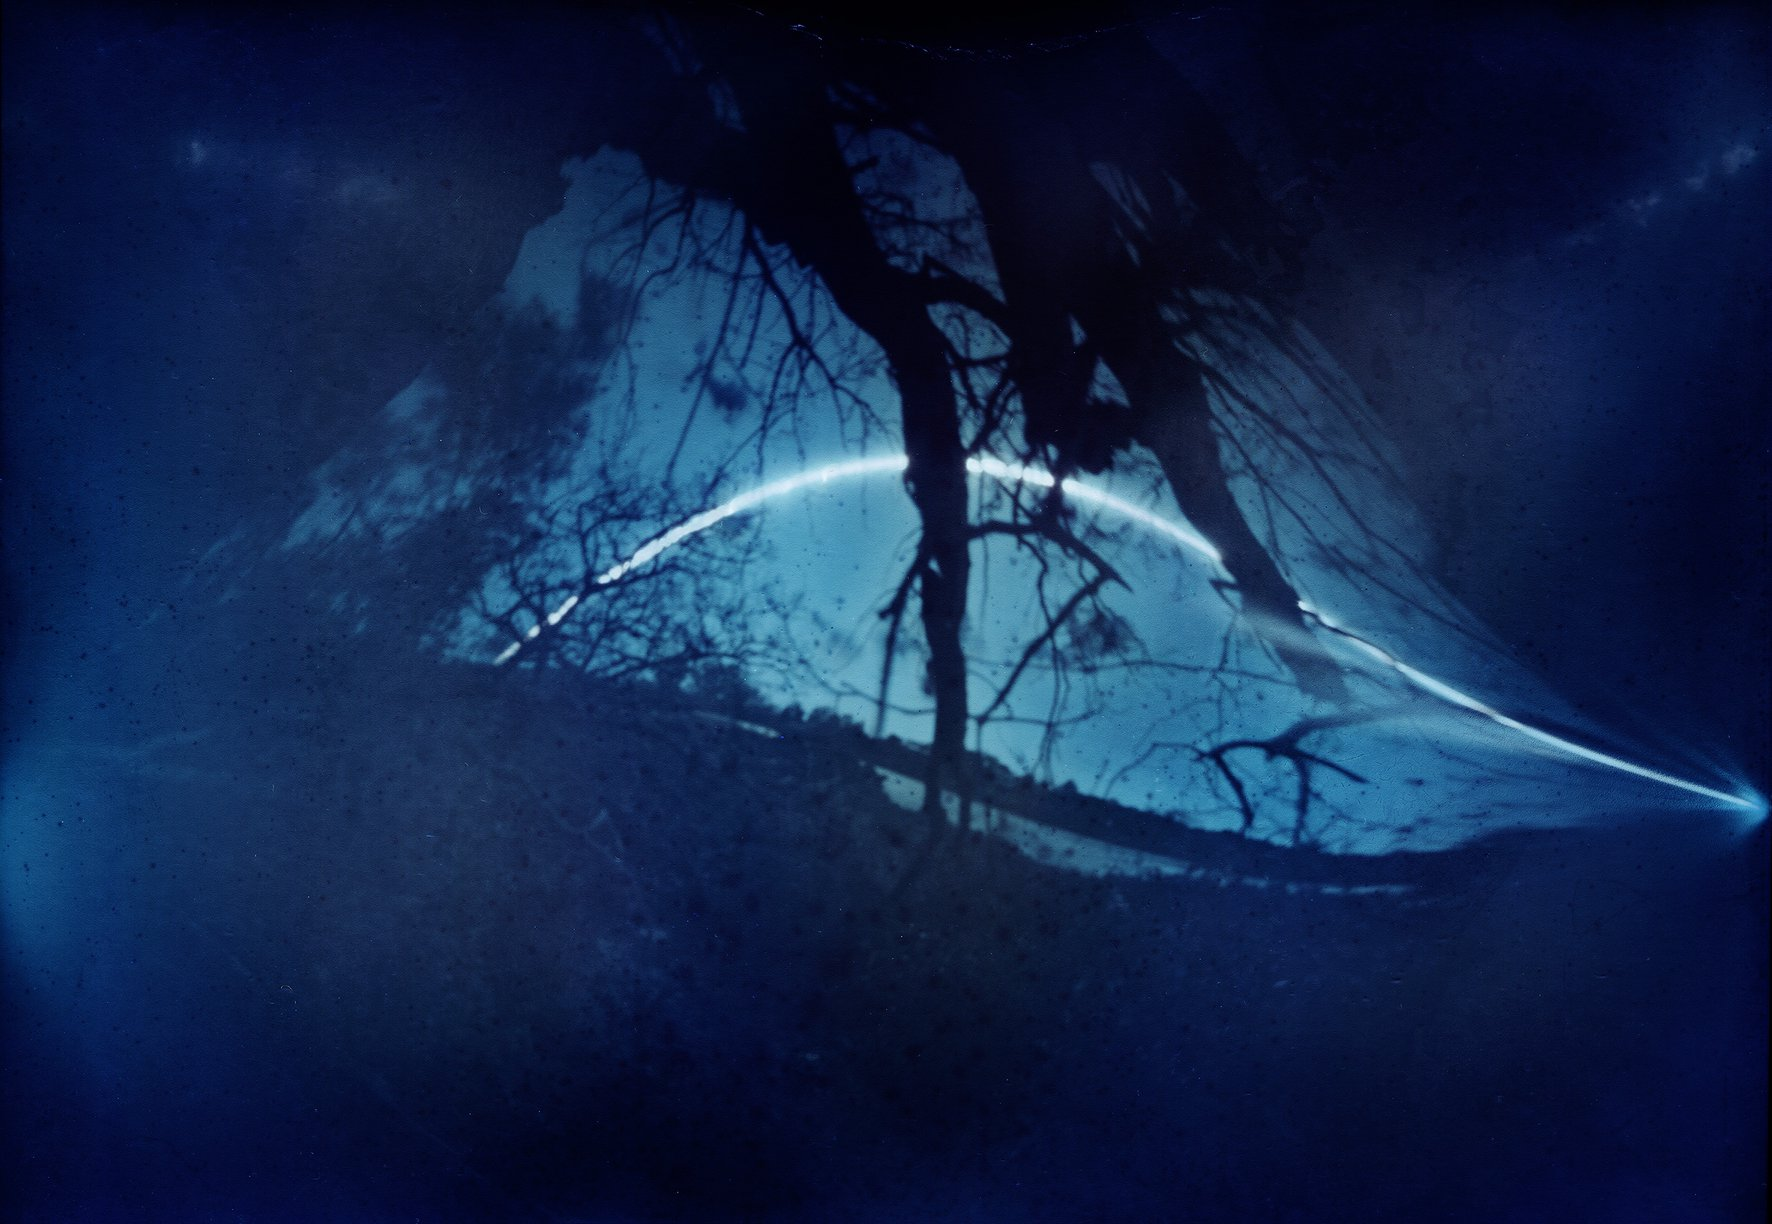 Lissa Knight   3 week pinhole solargraph of Whau River from Ken Maunder Park  from the Whau Solar Workshop